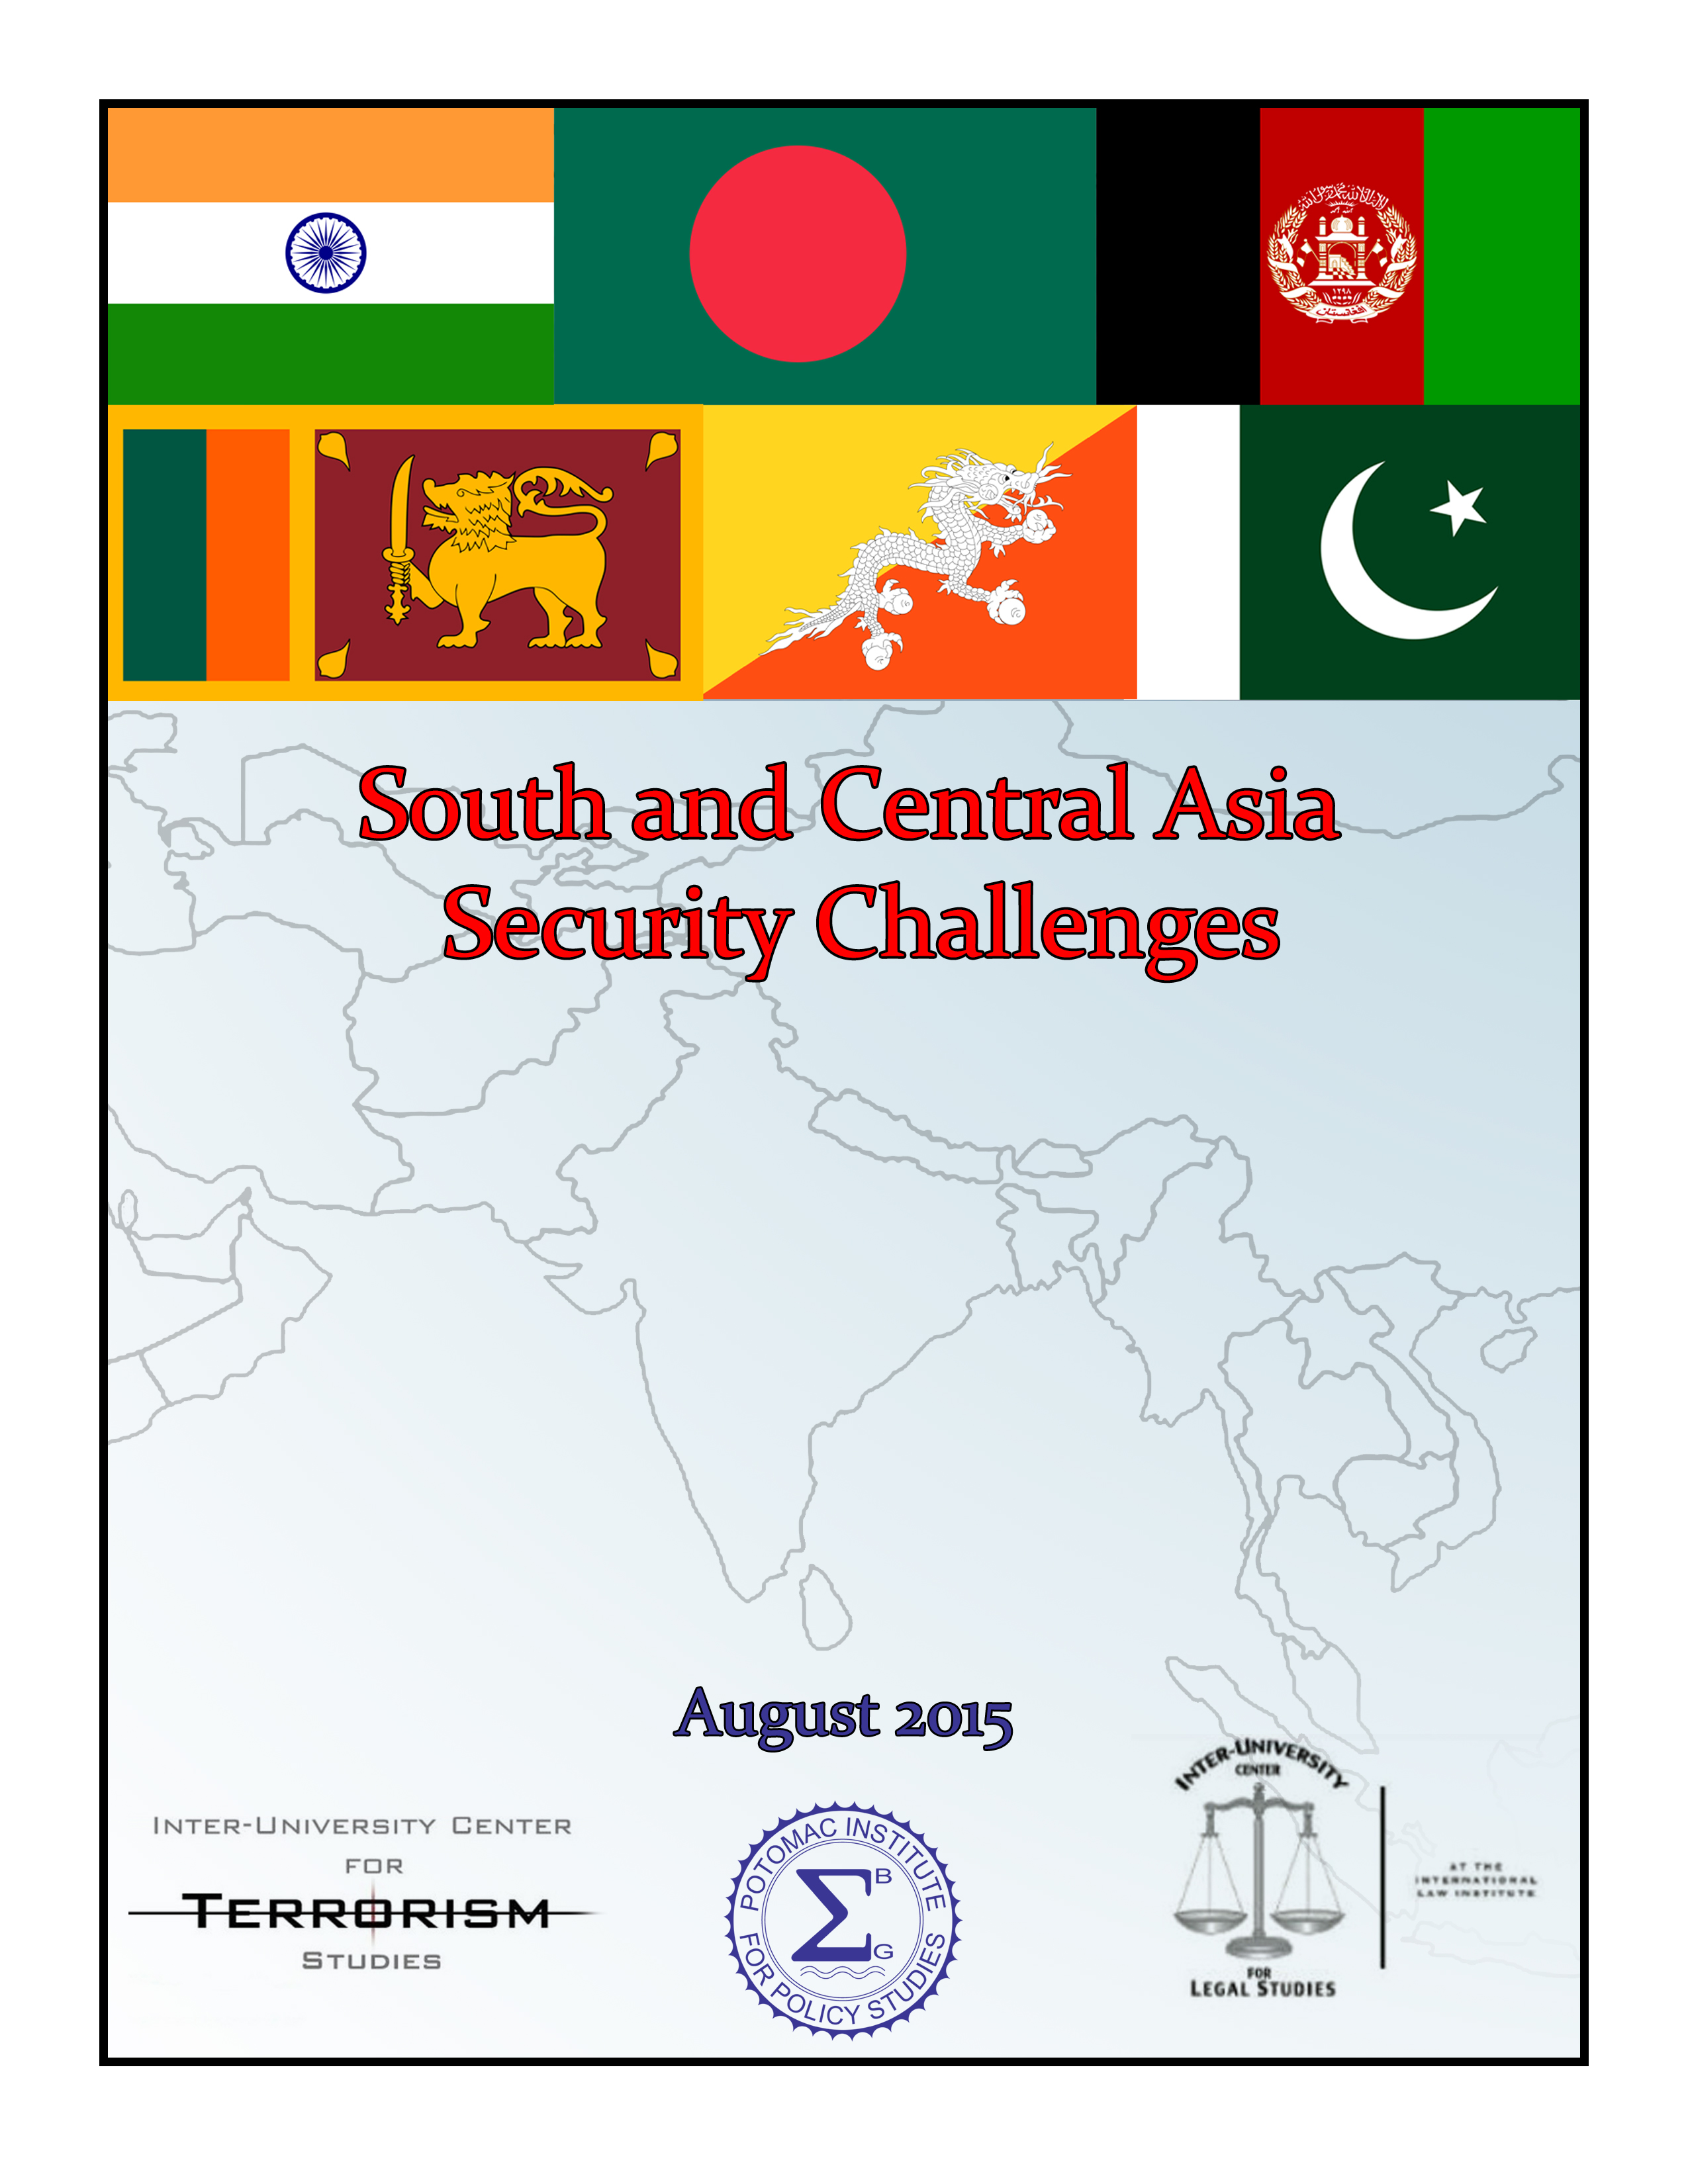 South and Central Asia Security Challenges